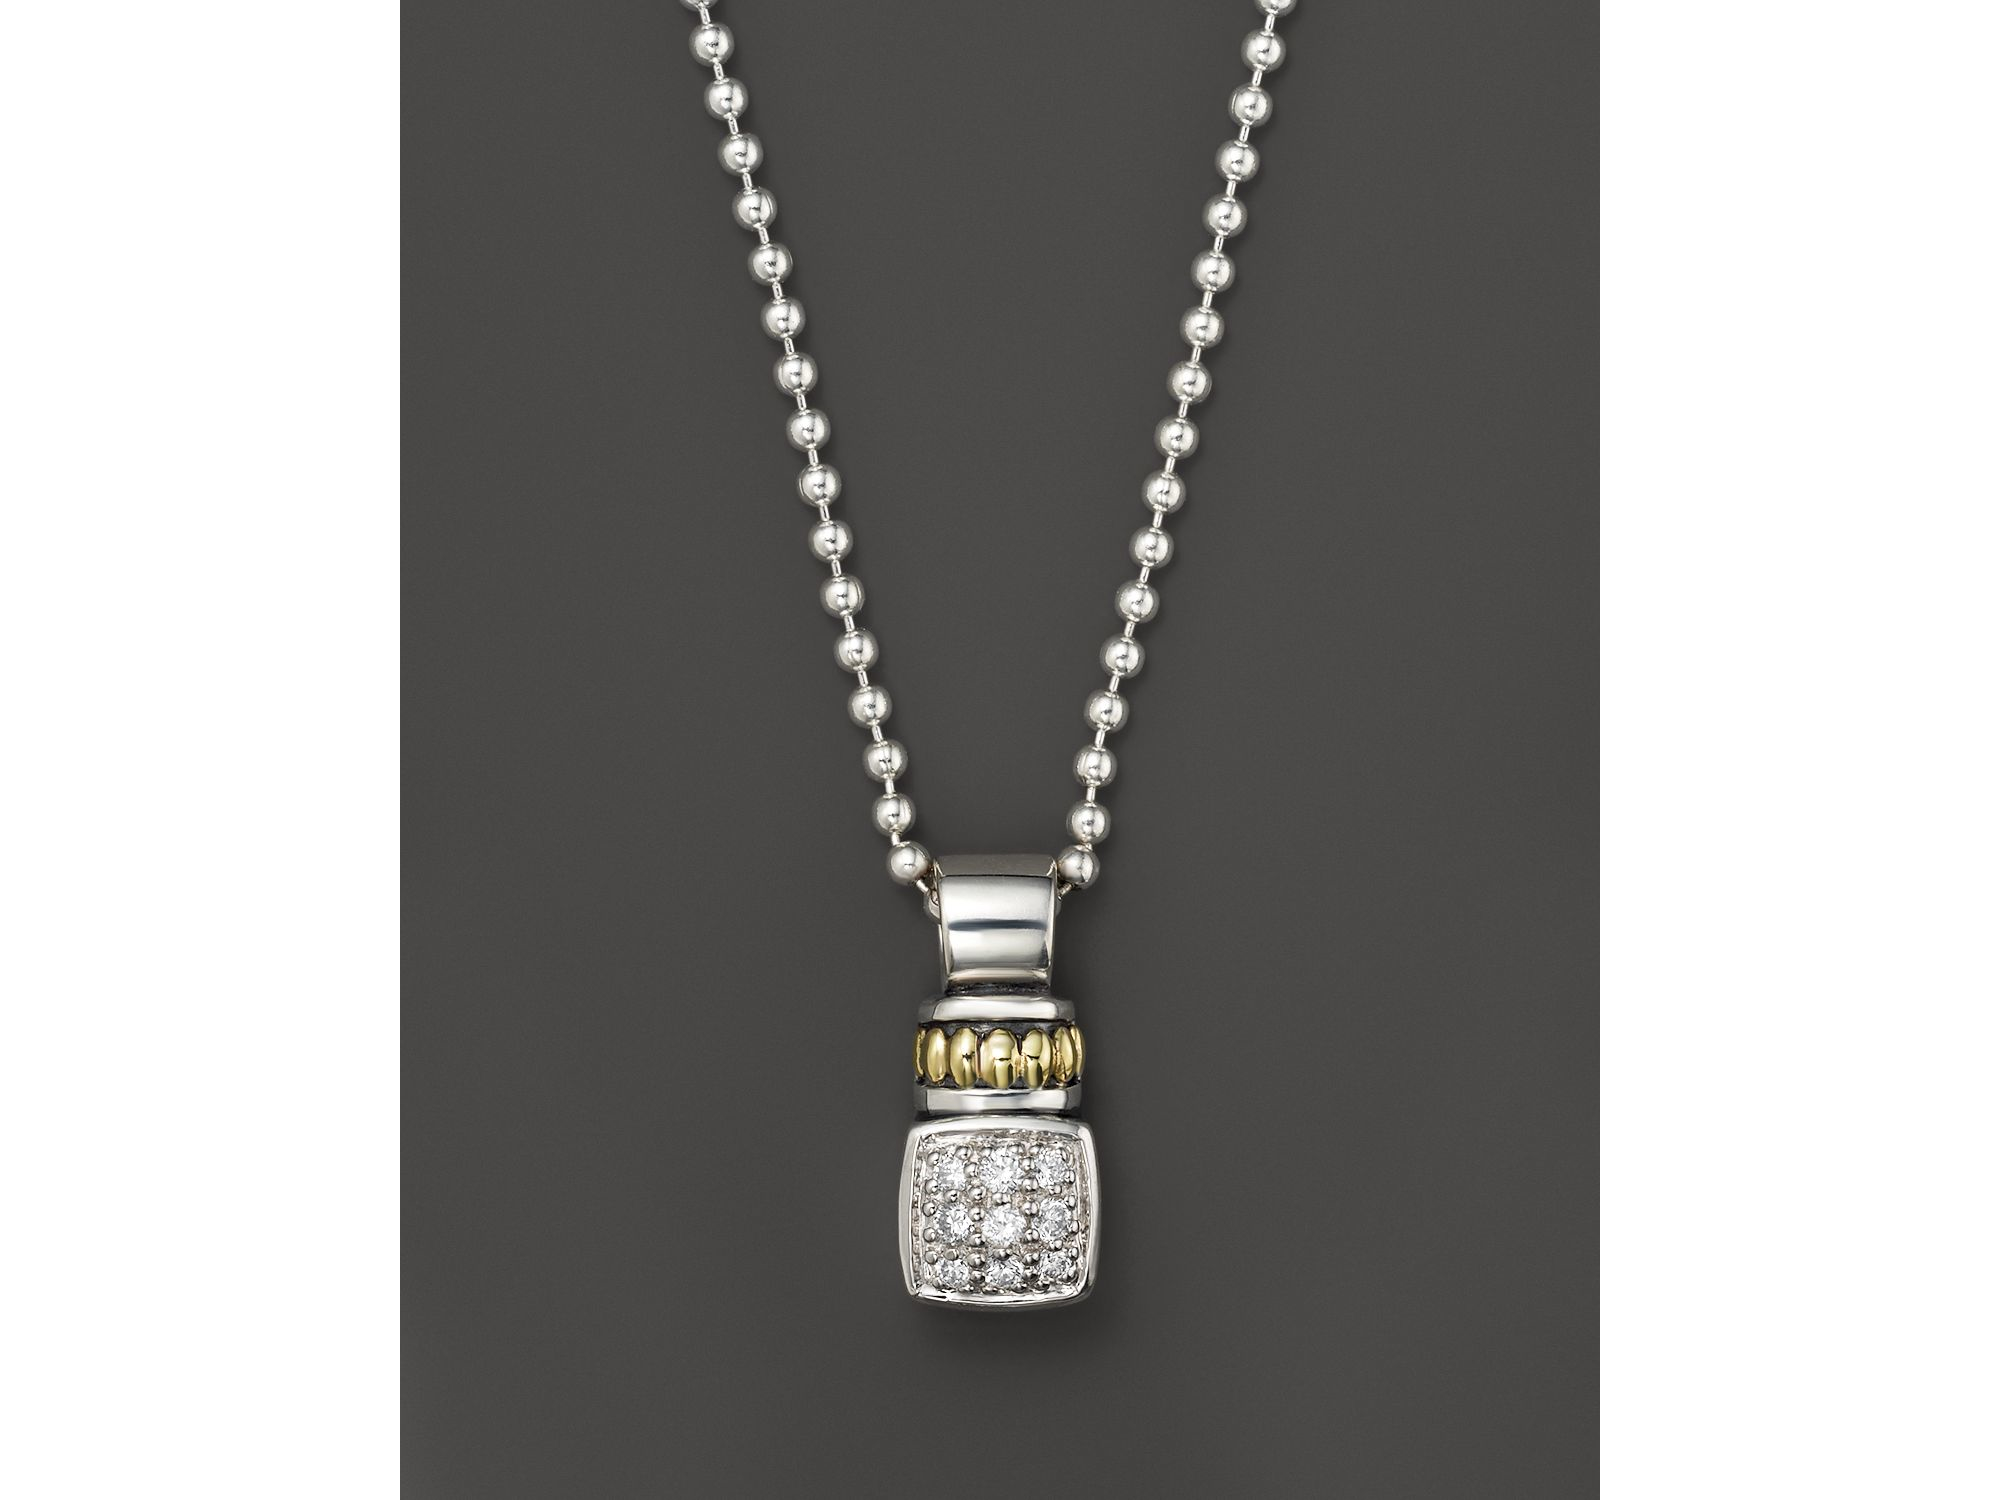 zeuner necklaces necklace jennifer hamsa products diamond jewelry pendant square enlarged